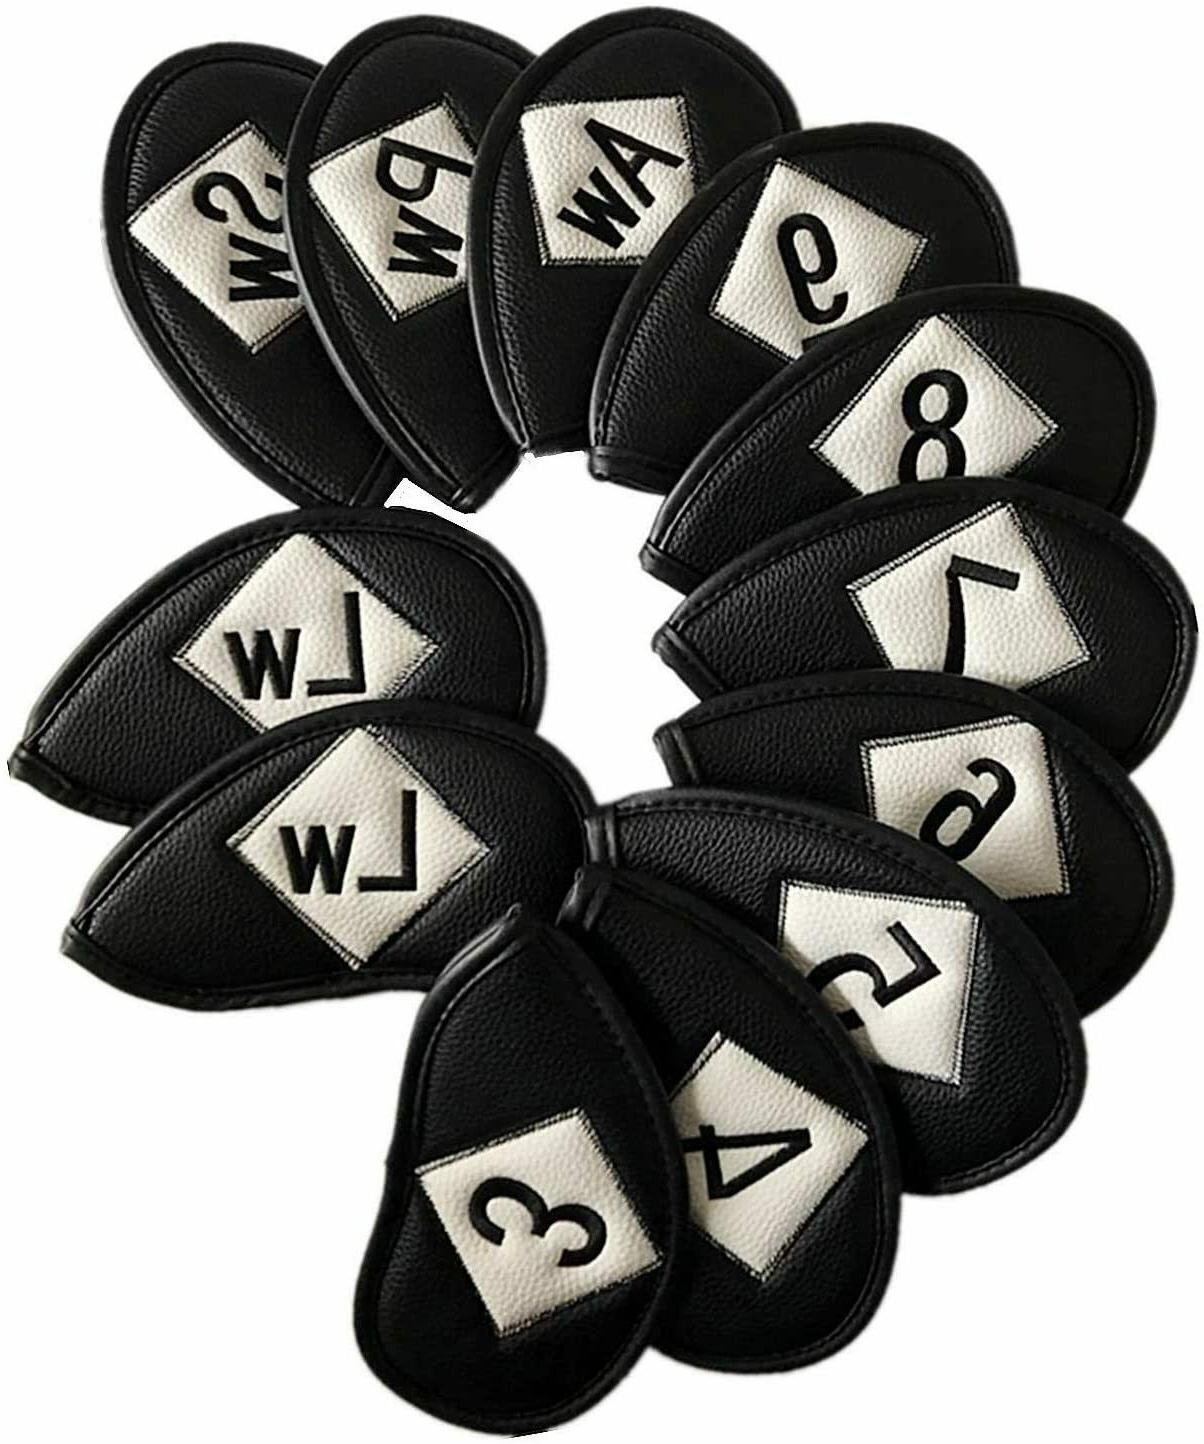 Golf Covers Set Leather Irons Club Headcovers US Stock